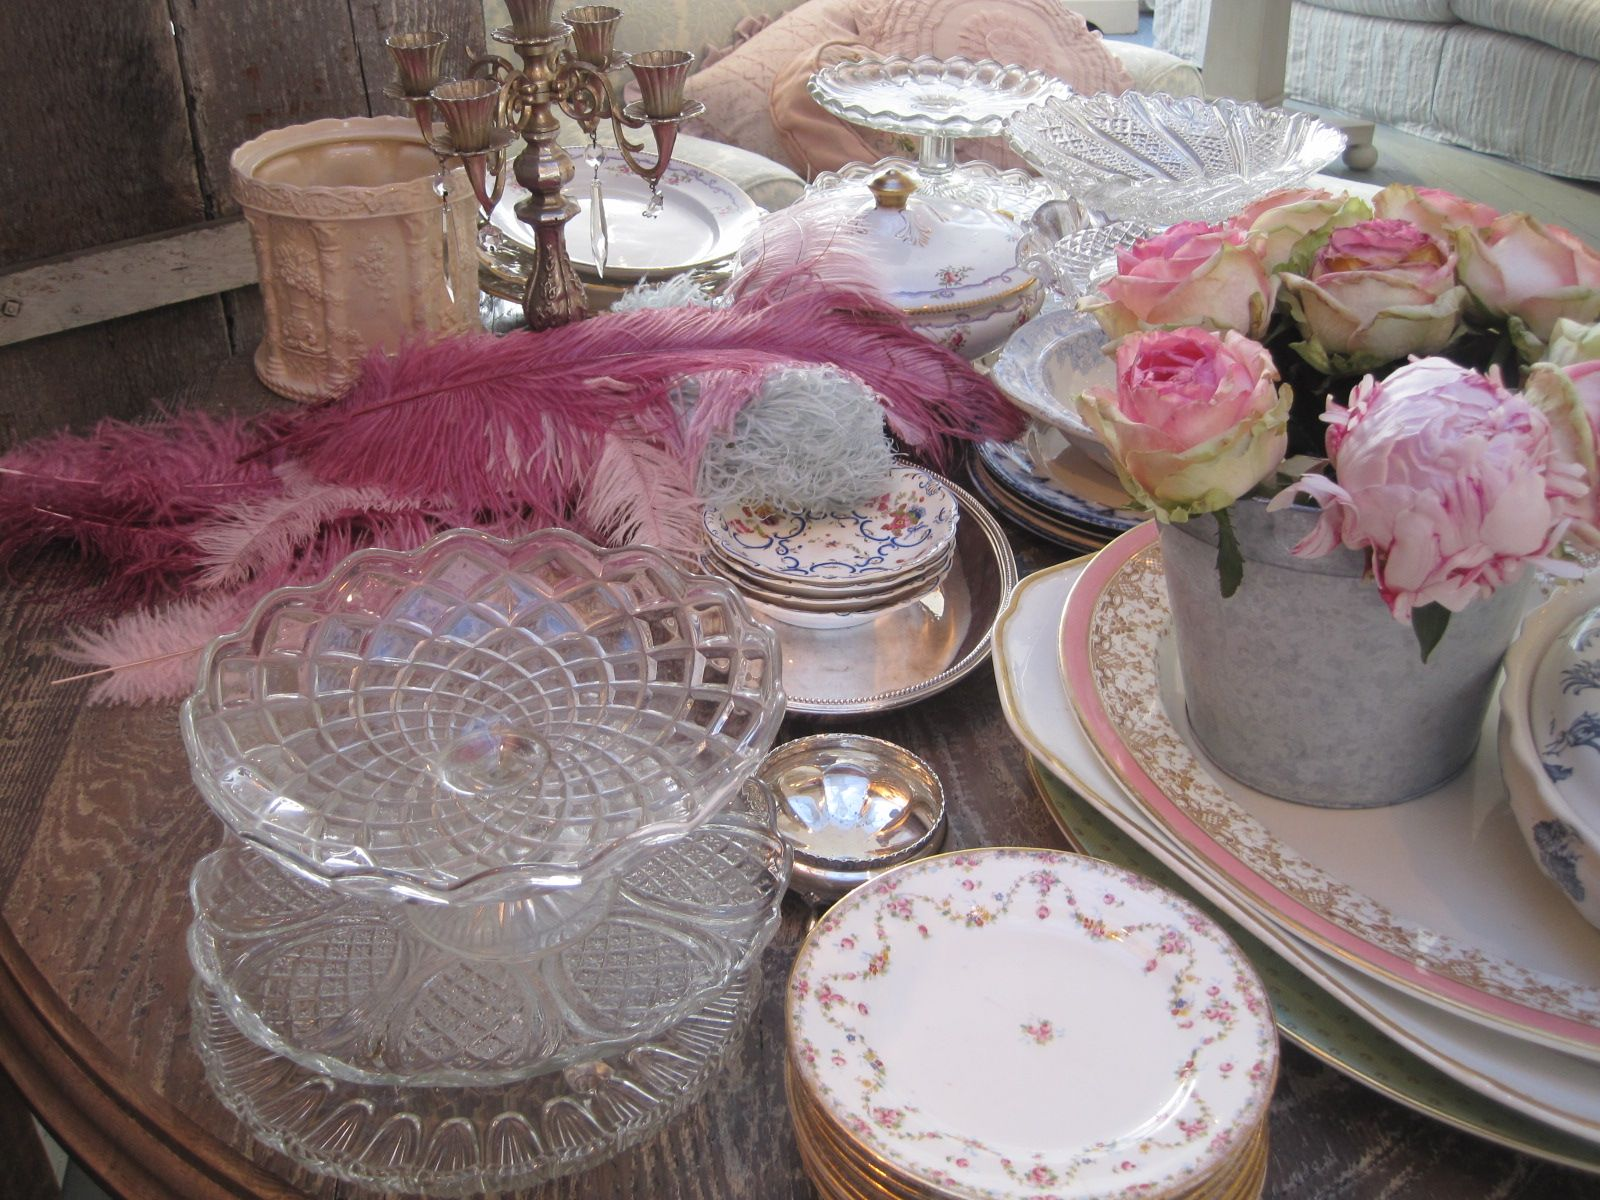 getting ready for tea time with peonies and vintage china